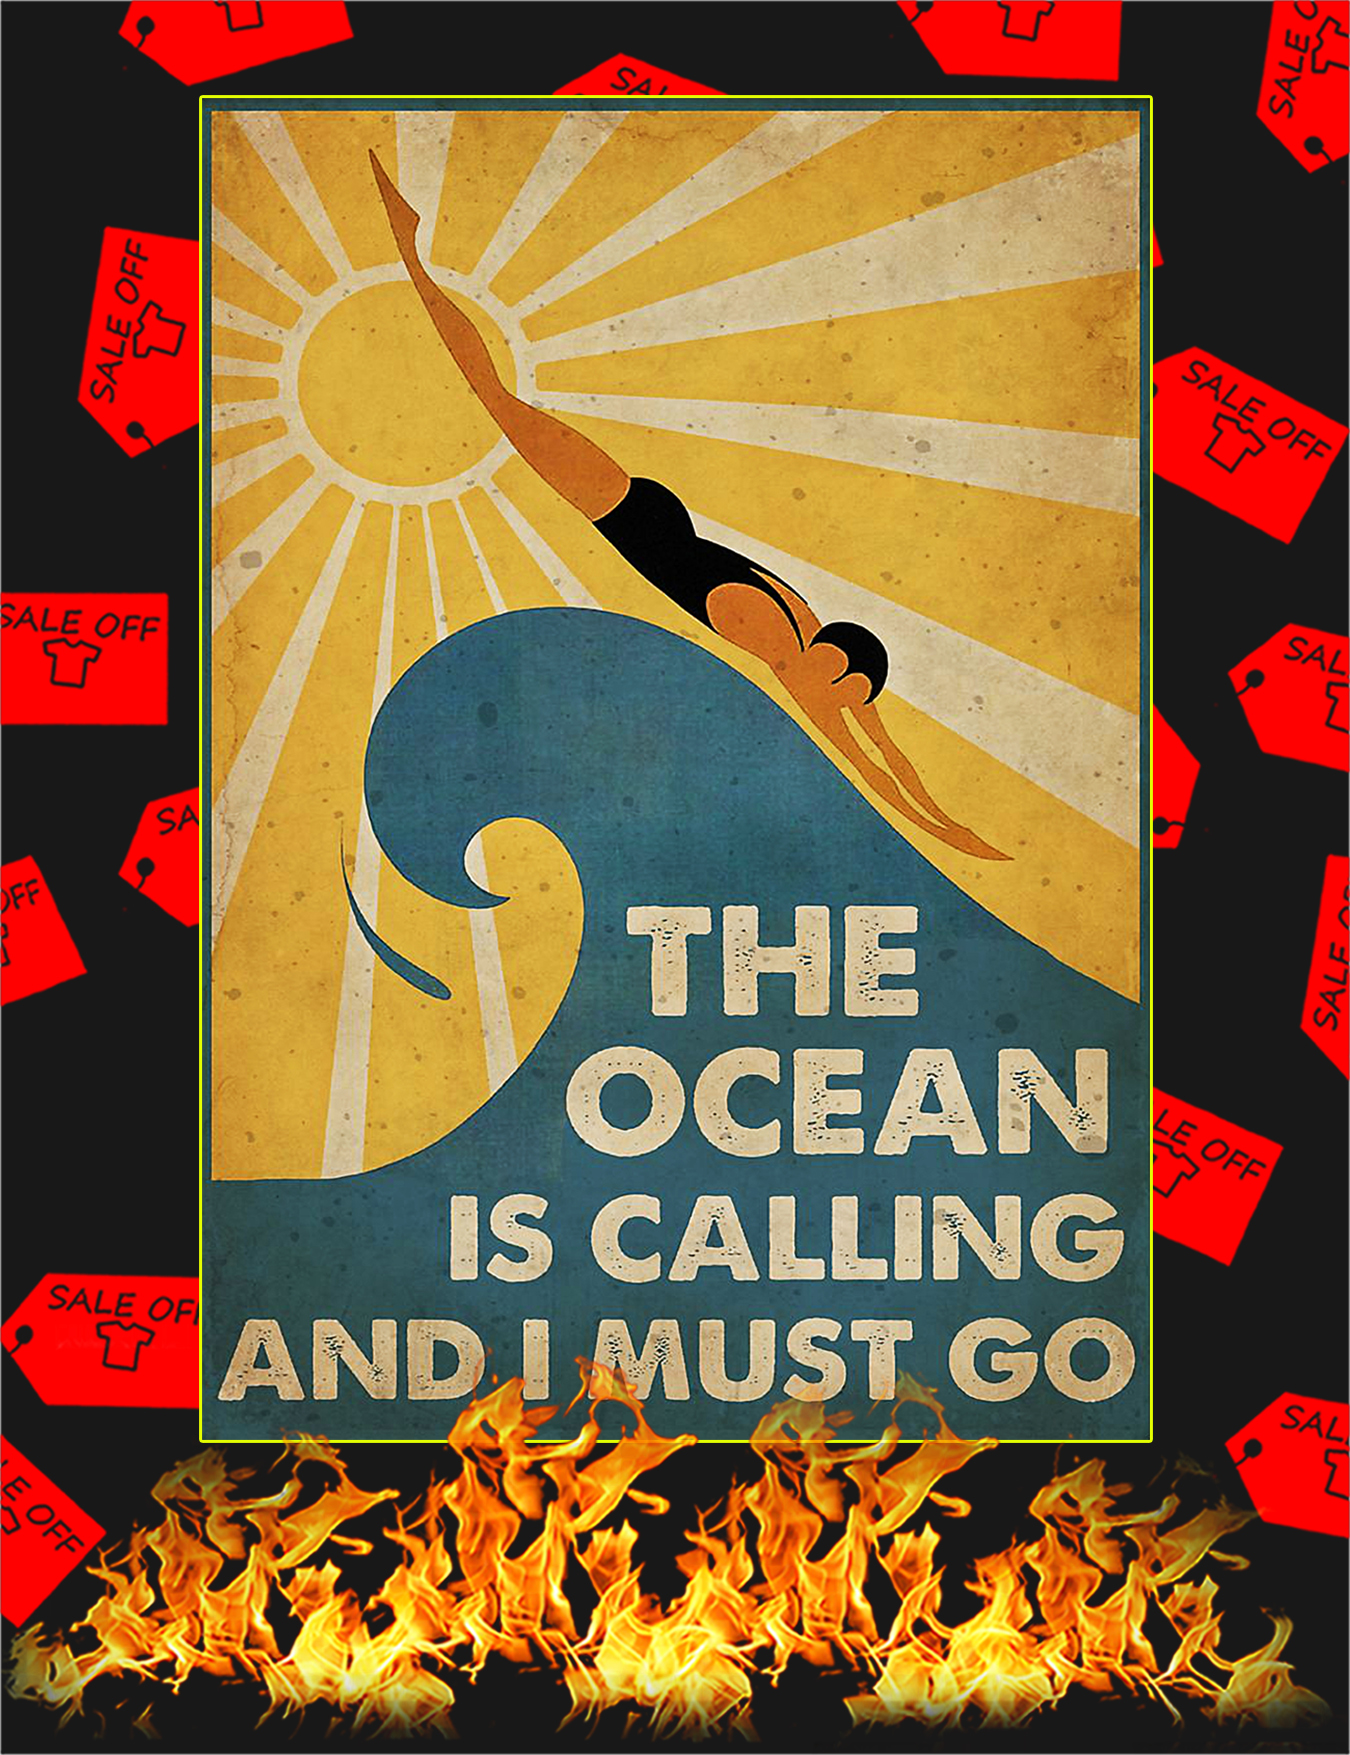 Swimming The ocean is calling and I must go poster - A3